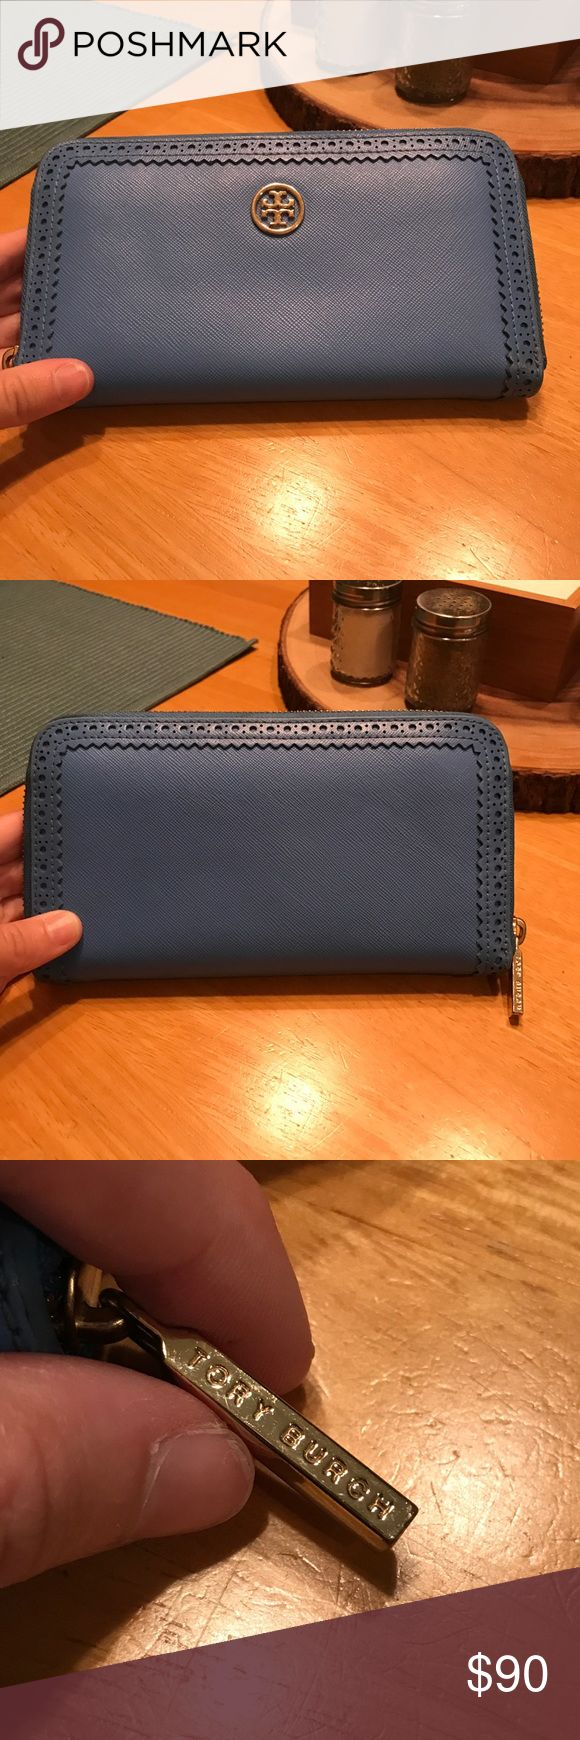 Tory Burch Wallet Tory Burch Robinson Spectator Zip Continental Wallet - In very good condition - the only sign of wear is around zipper. The only reason I'm selling it is because I just recently bought a new wallet that matches my purse Tory Burch Bags Wallets